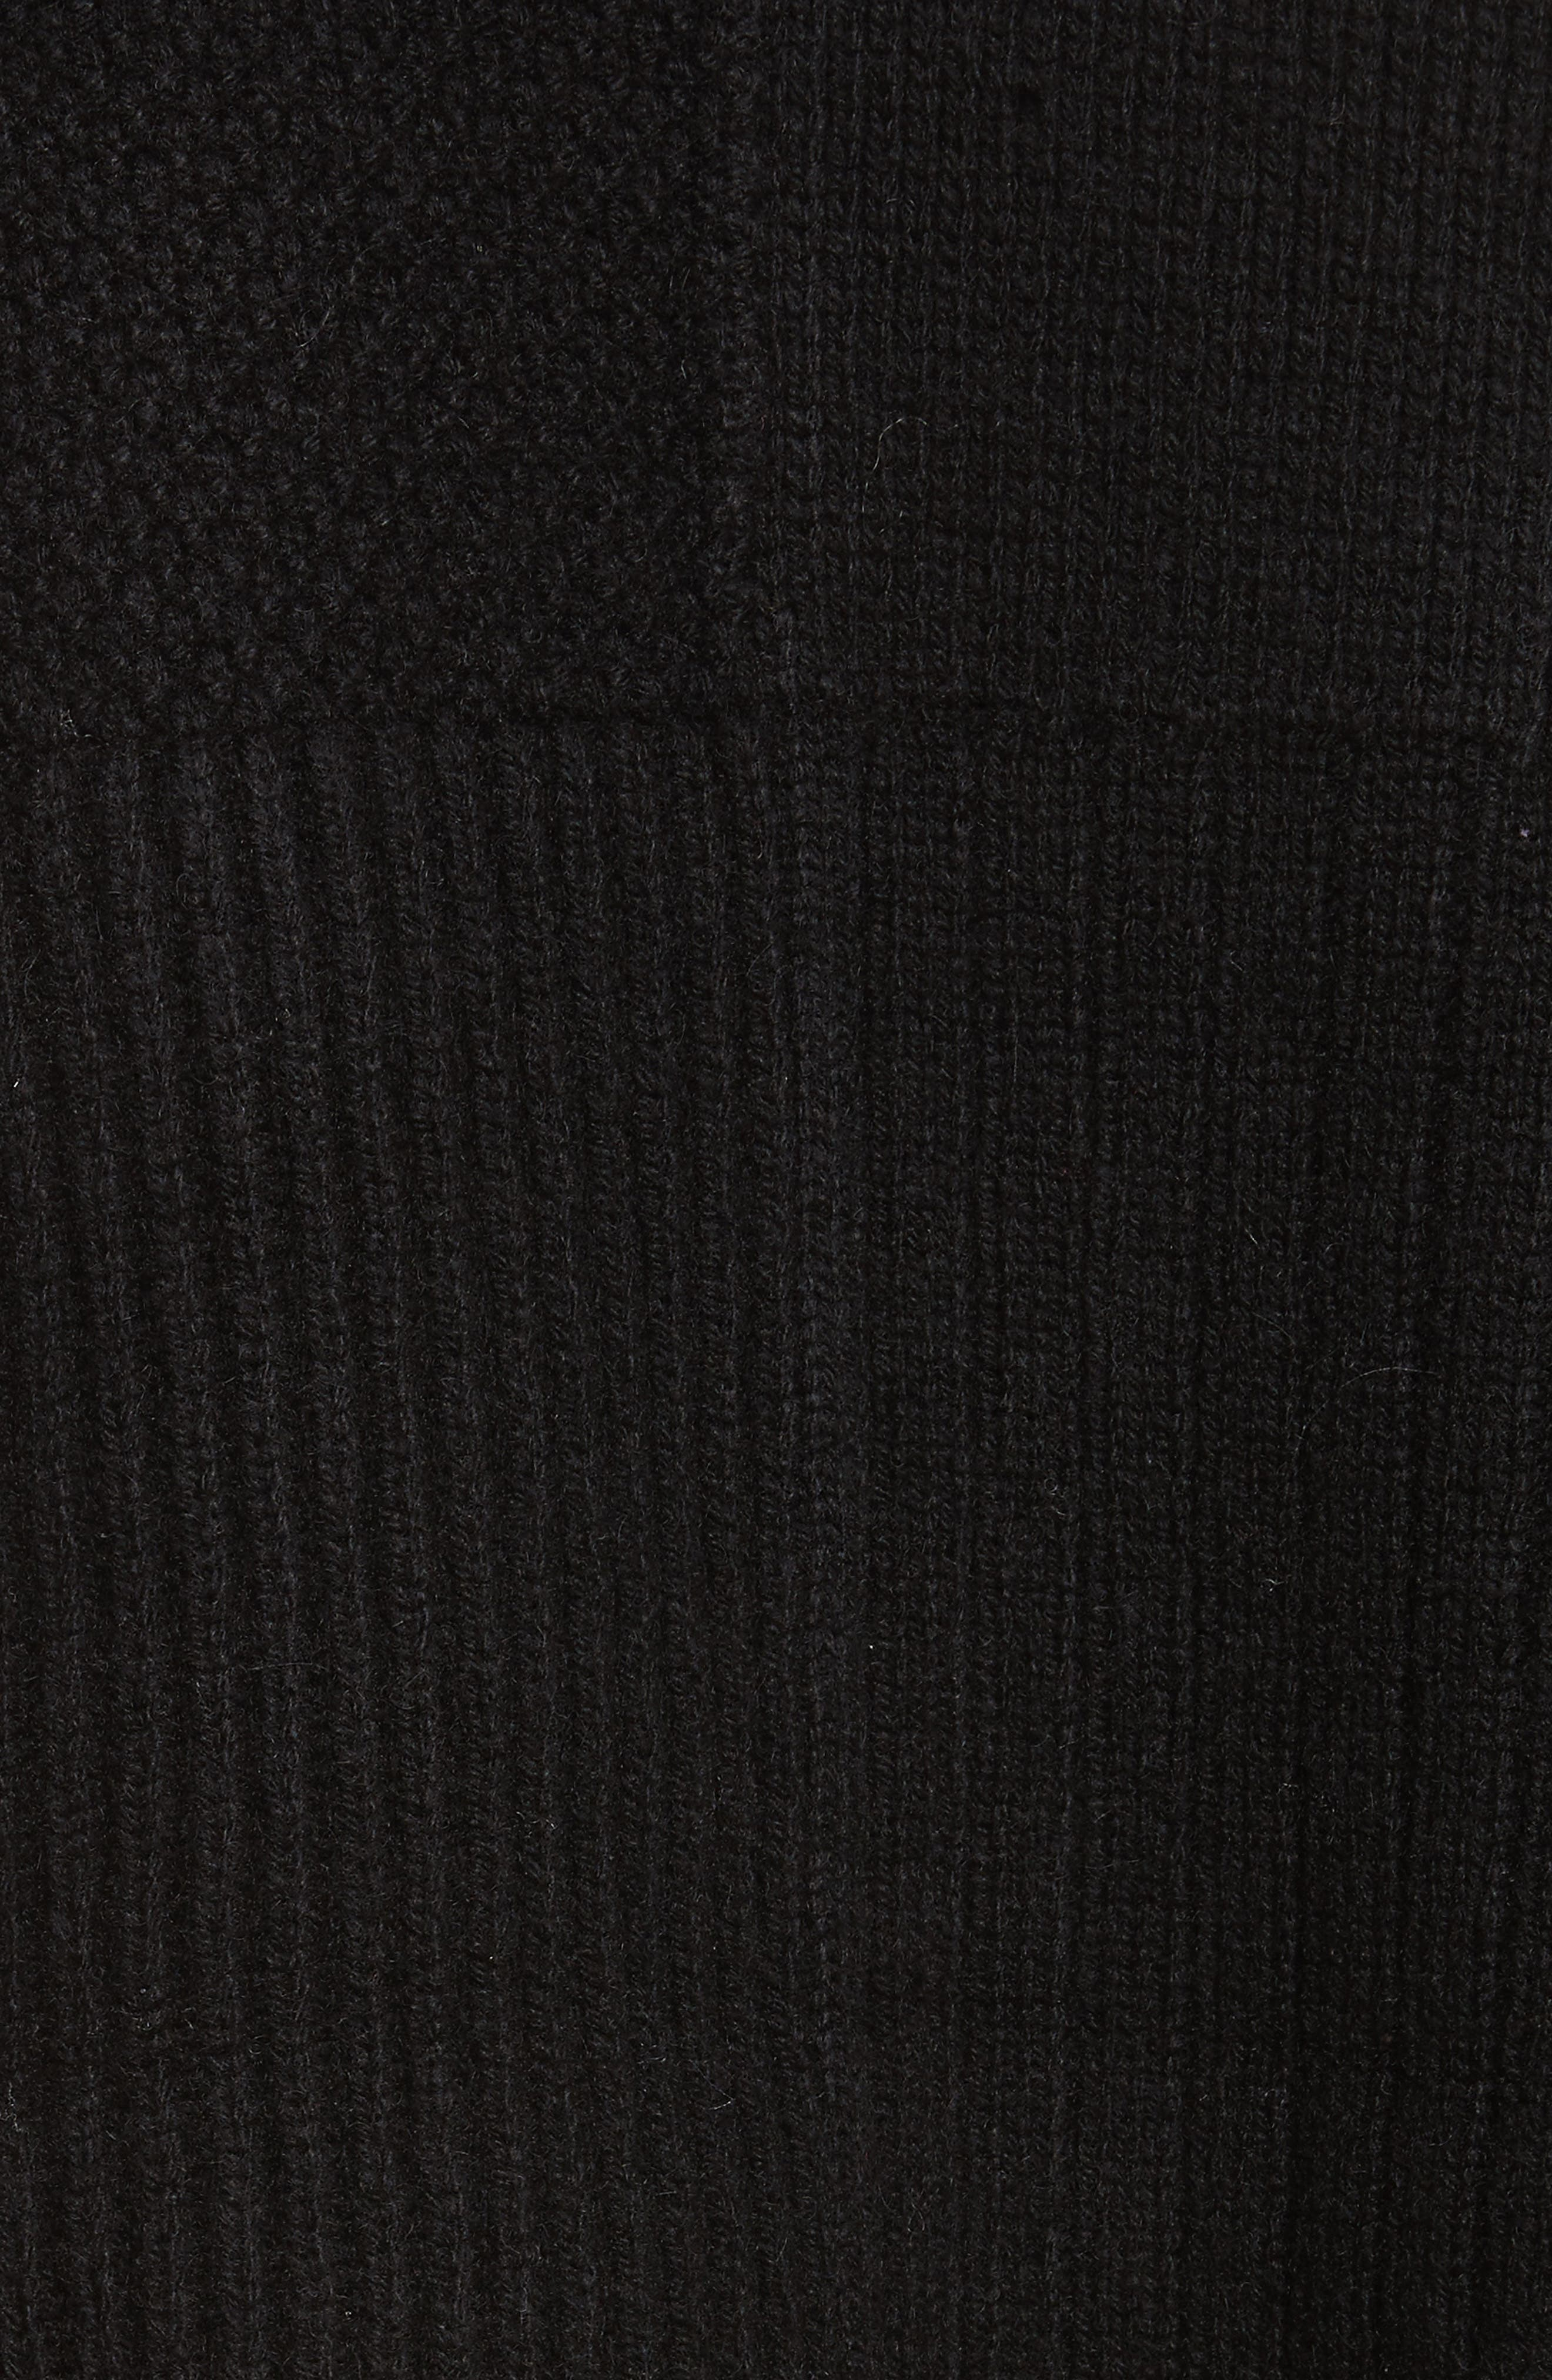 Wool Blend Textured Pullover,                             Alternate thumbnail 5, color,                             001